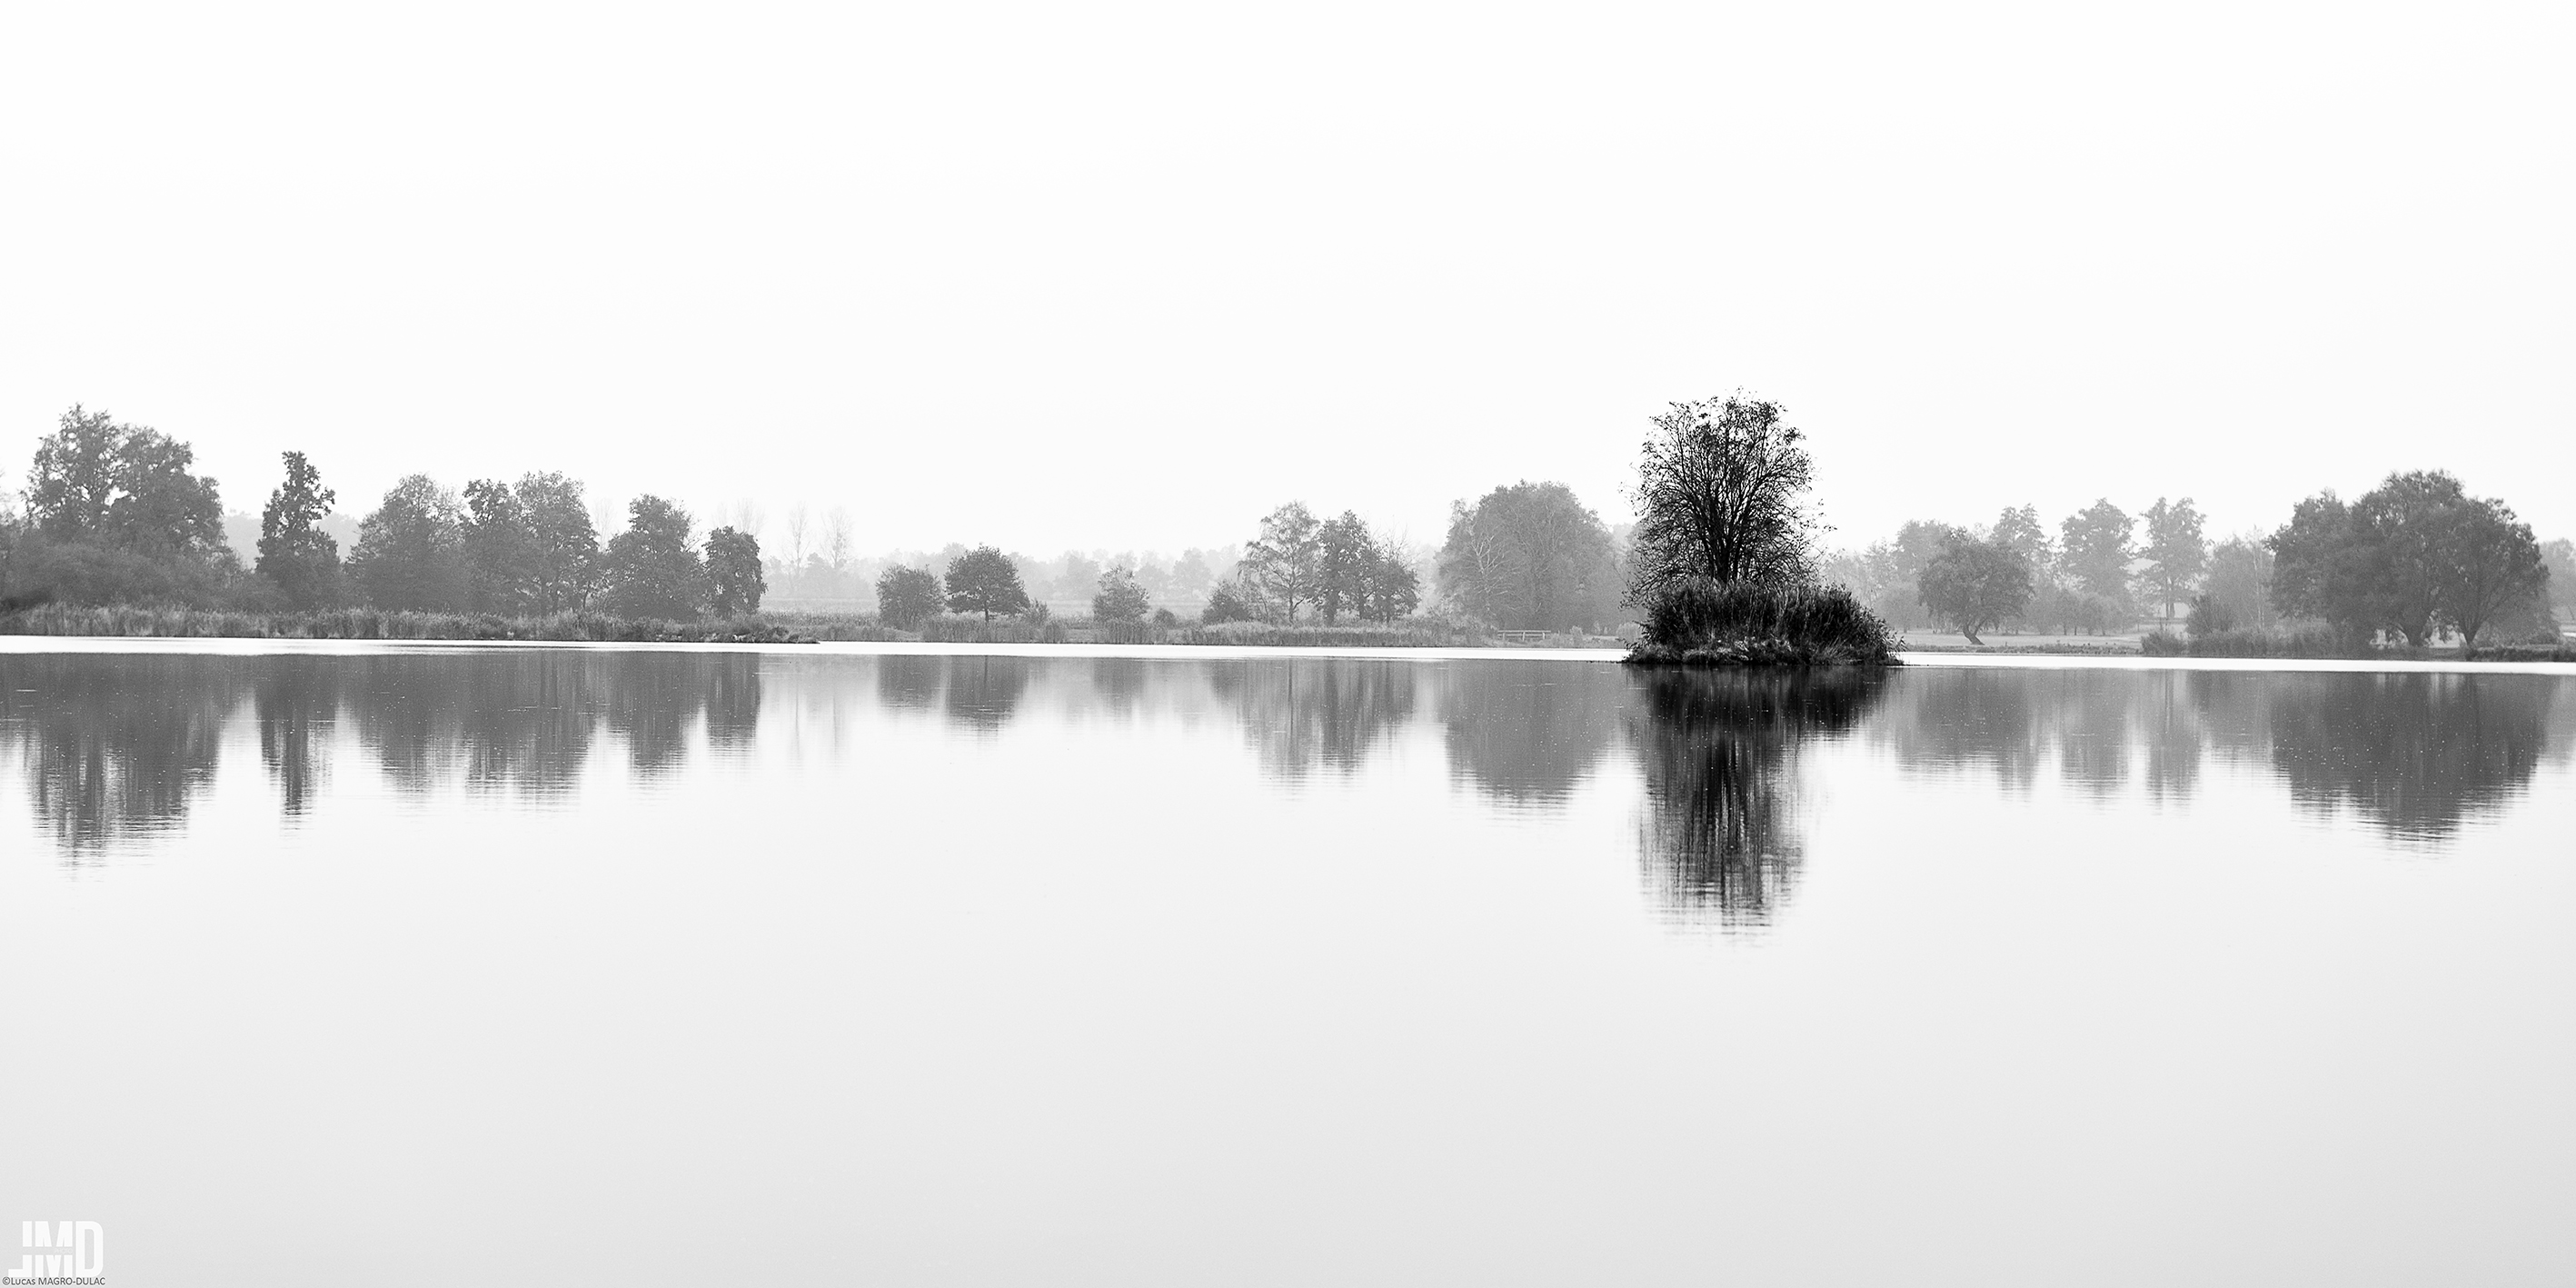 Paysage_LMD_0003_BD_by_Lucas_MAGRO-DULAC_2014